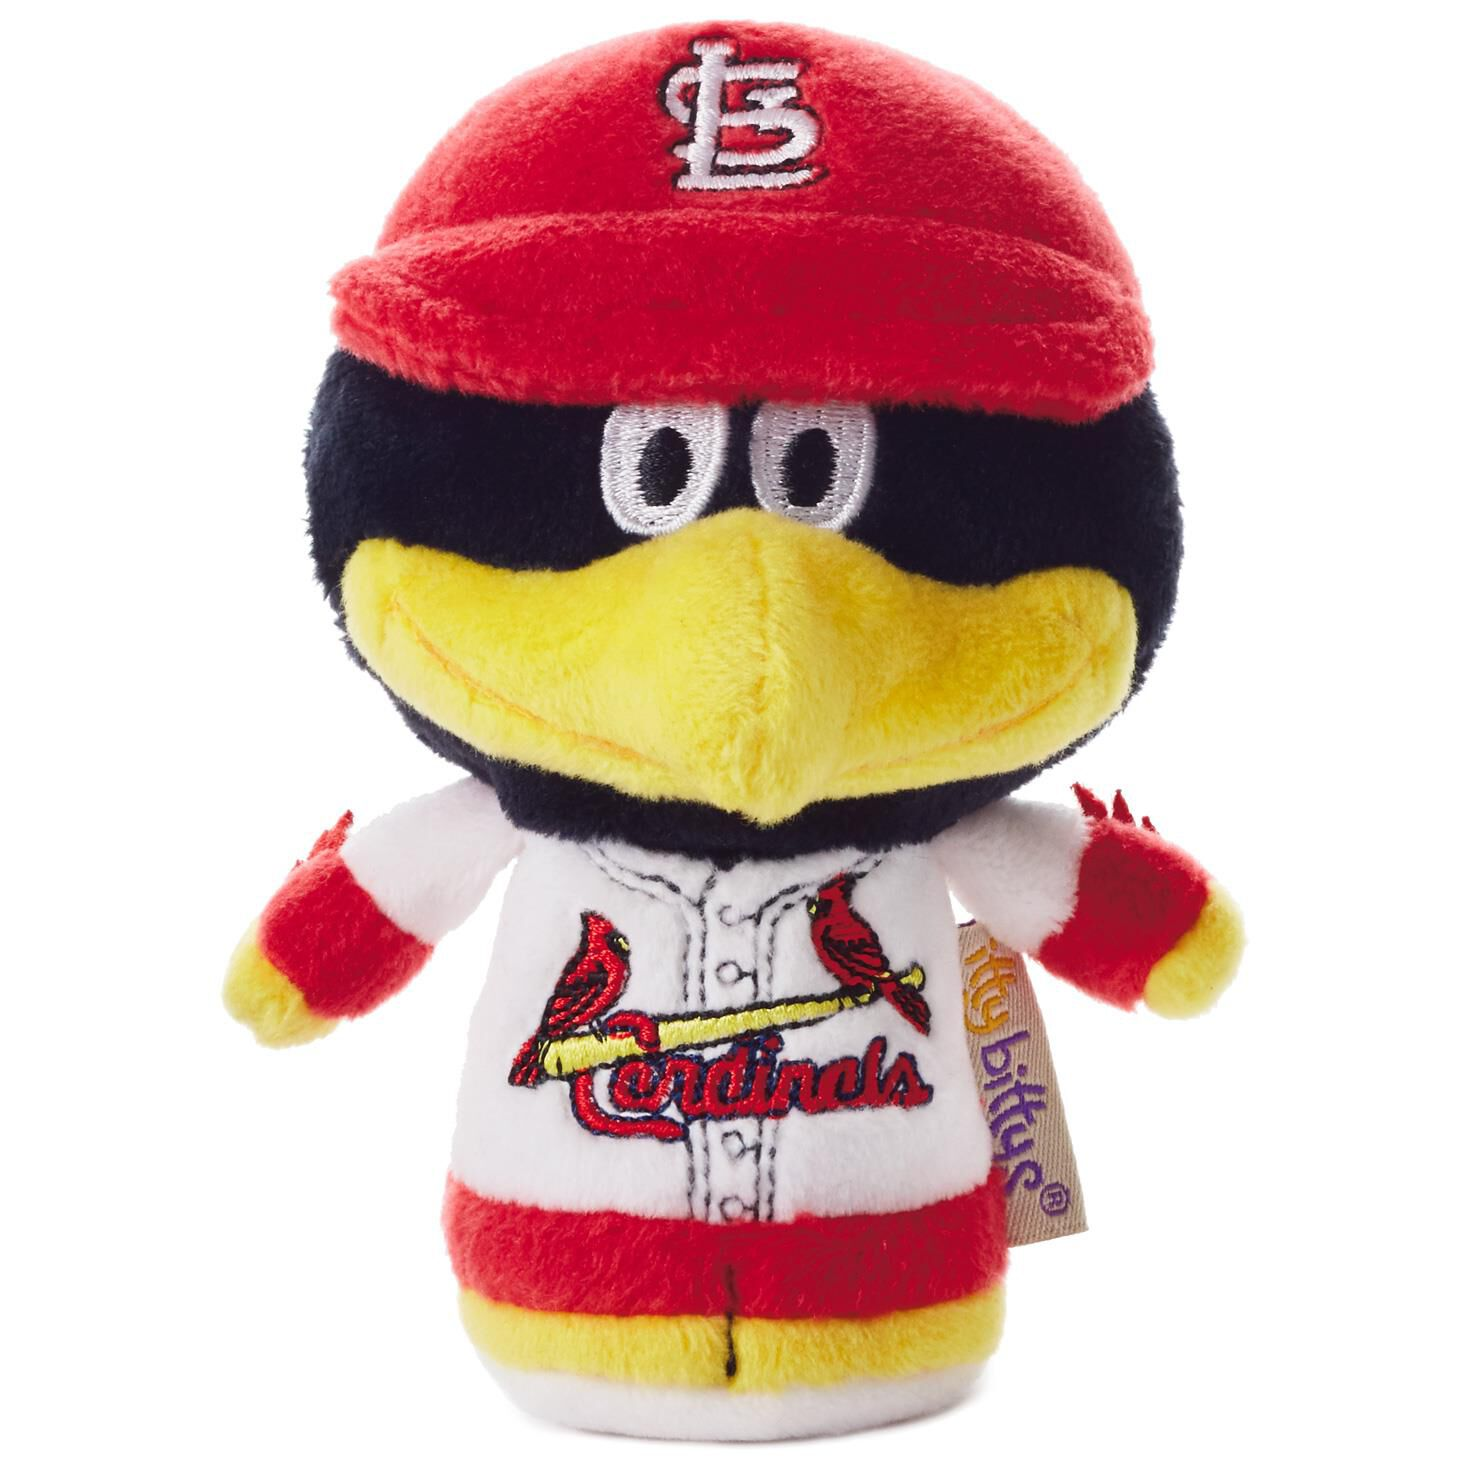 100 st louis cardinals home decor compare prices on. Black Bedroom Furniture Sets. Home Design Ideas